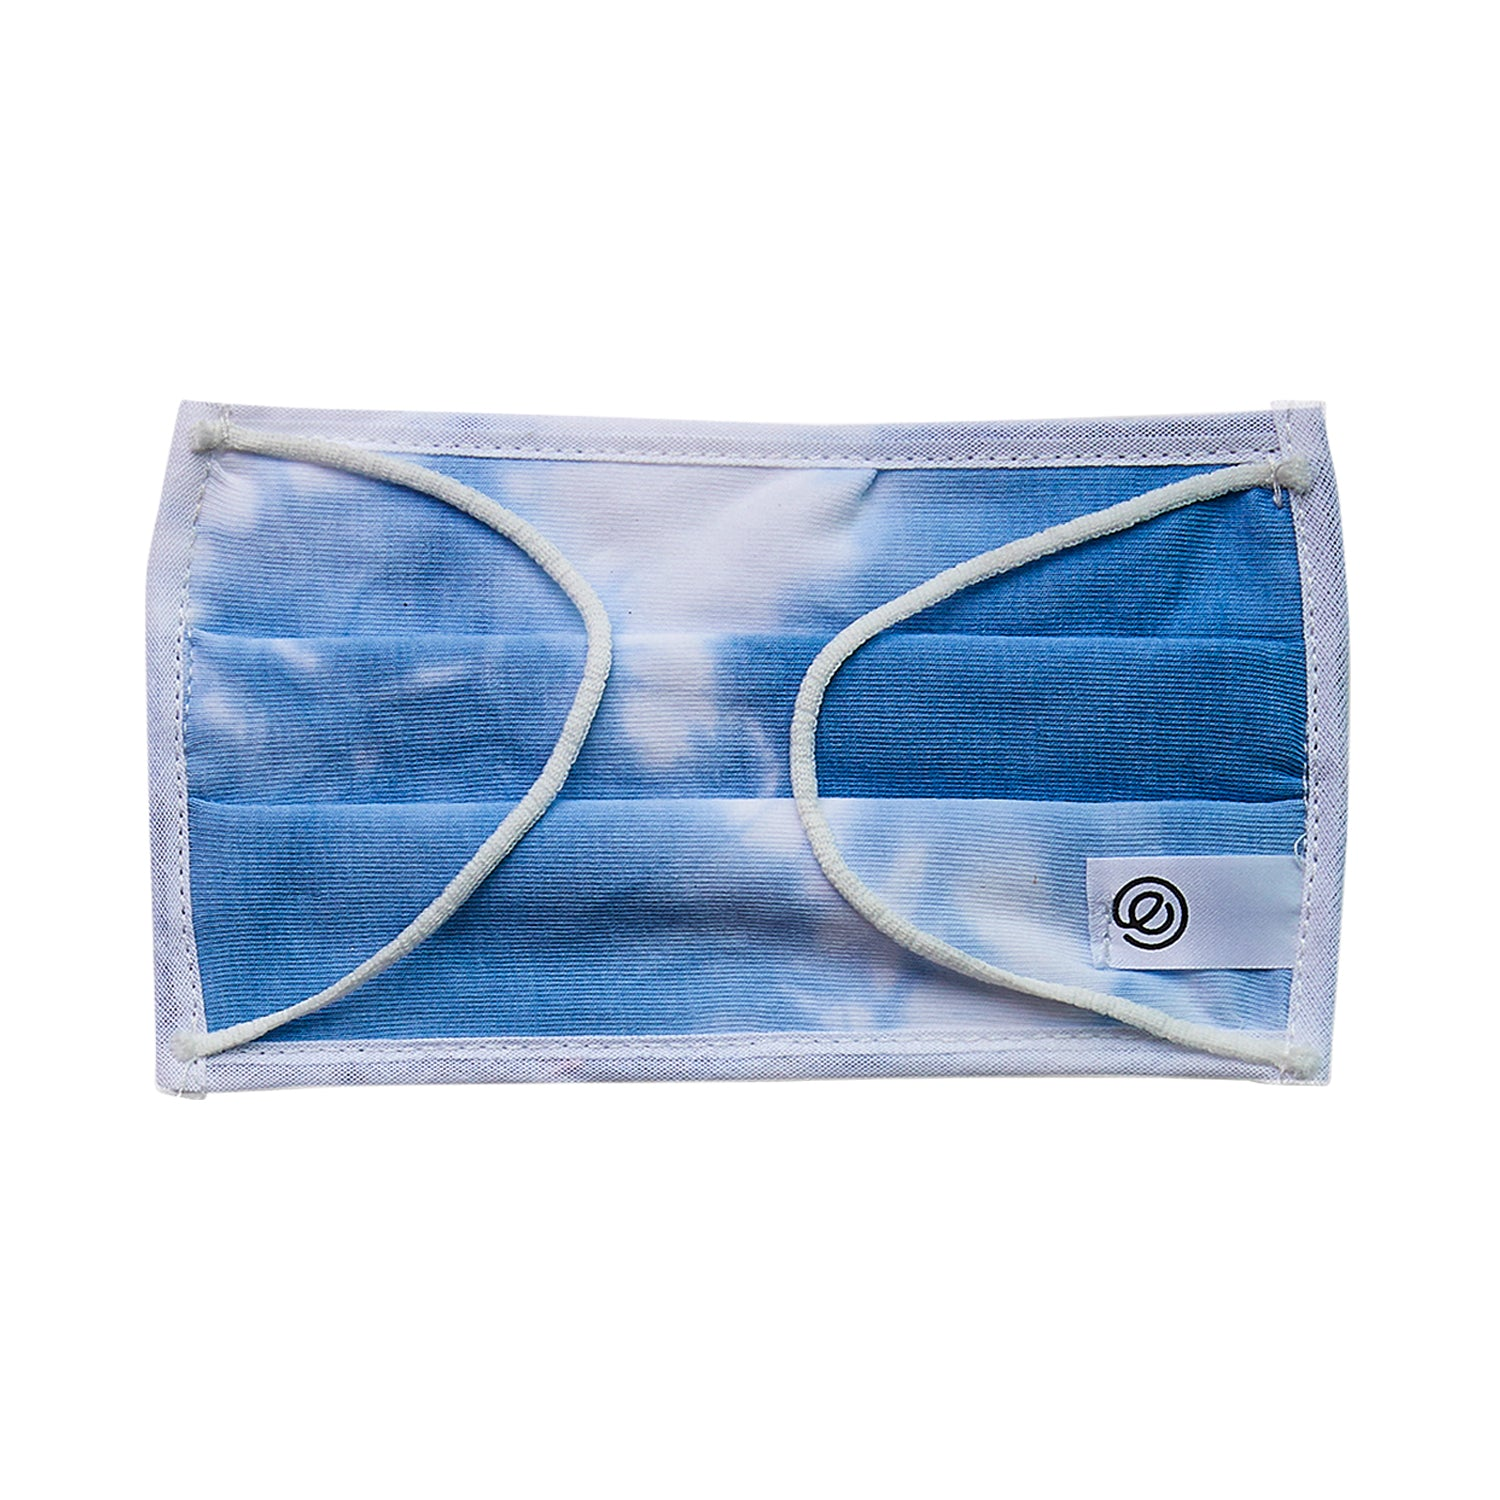 Easy Mask Pleated - Blue Tie Dye (3 Pack)